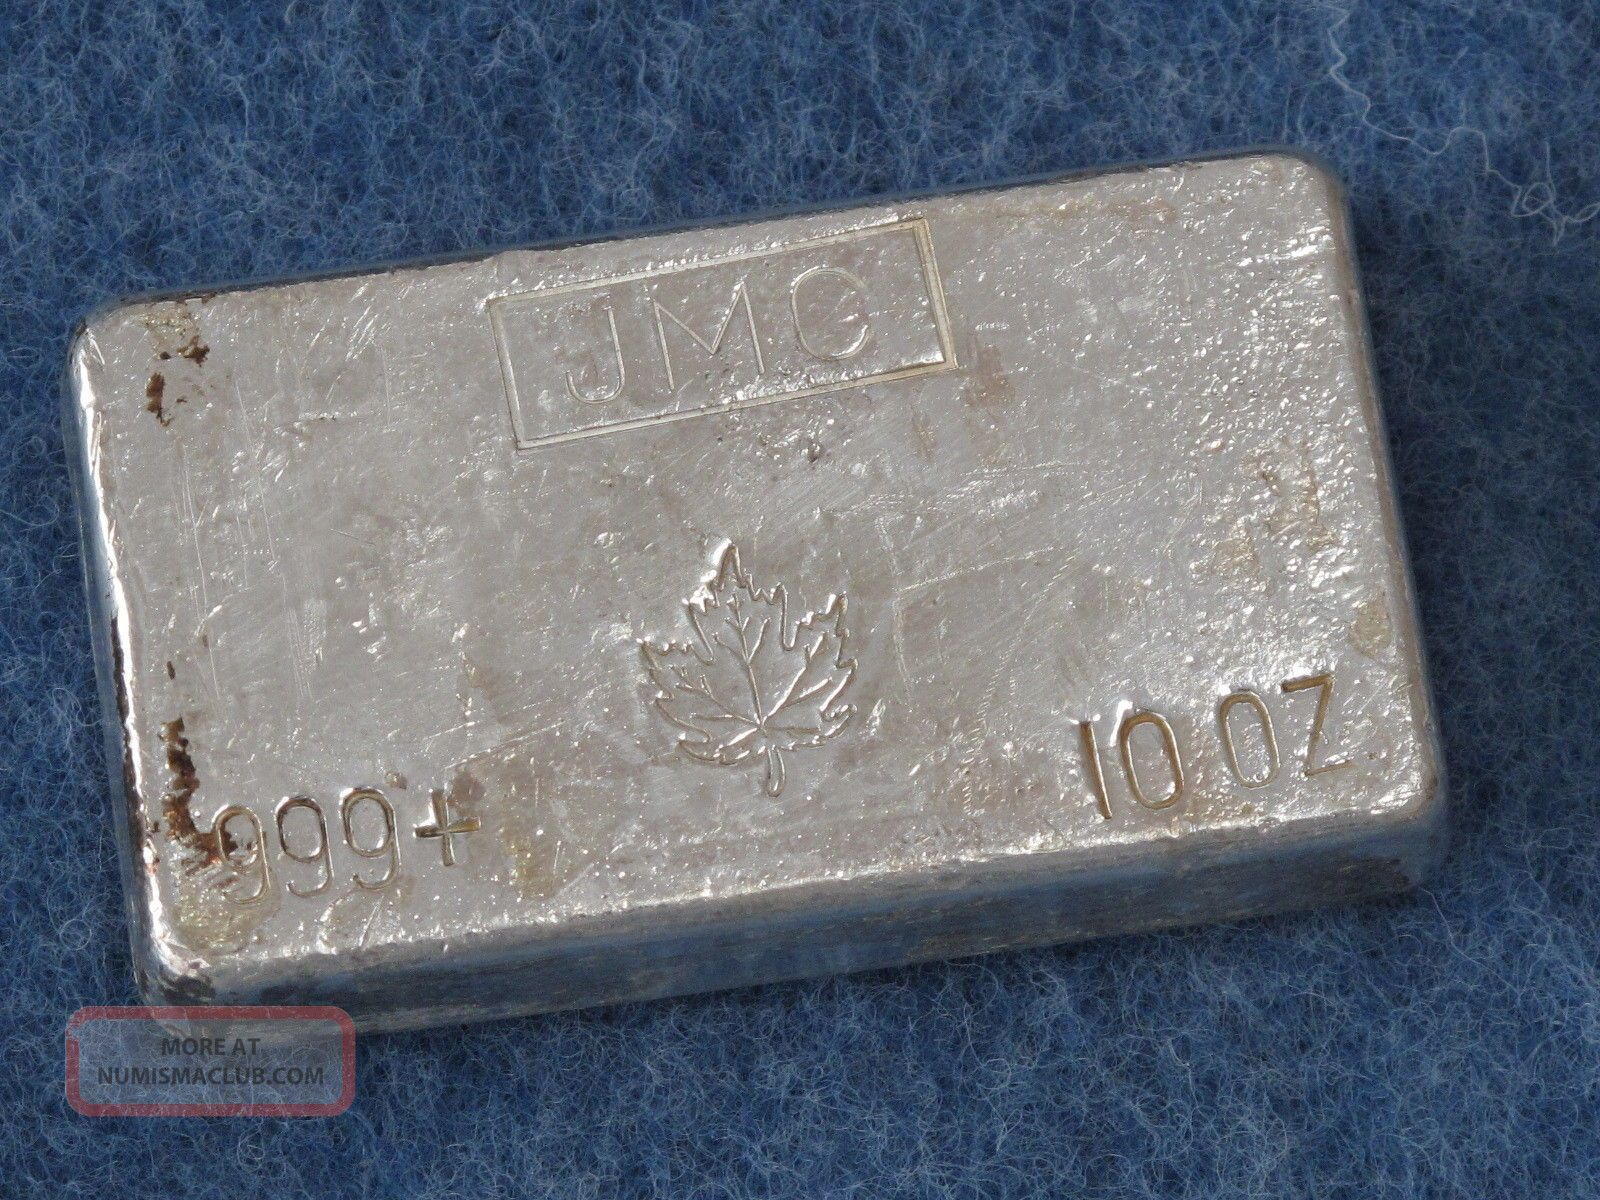 Johnson Matthey Canada Maple Leaf 999 Silver 10 Oz Bar